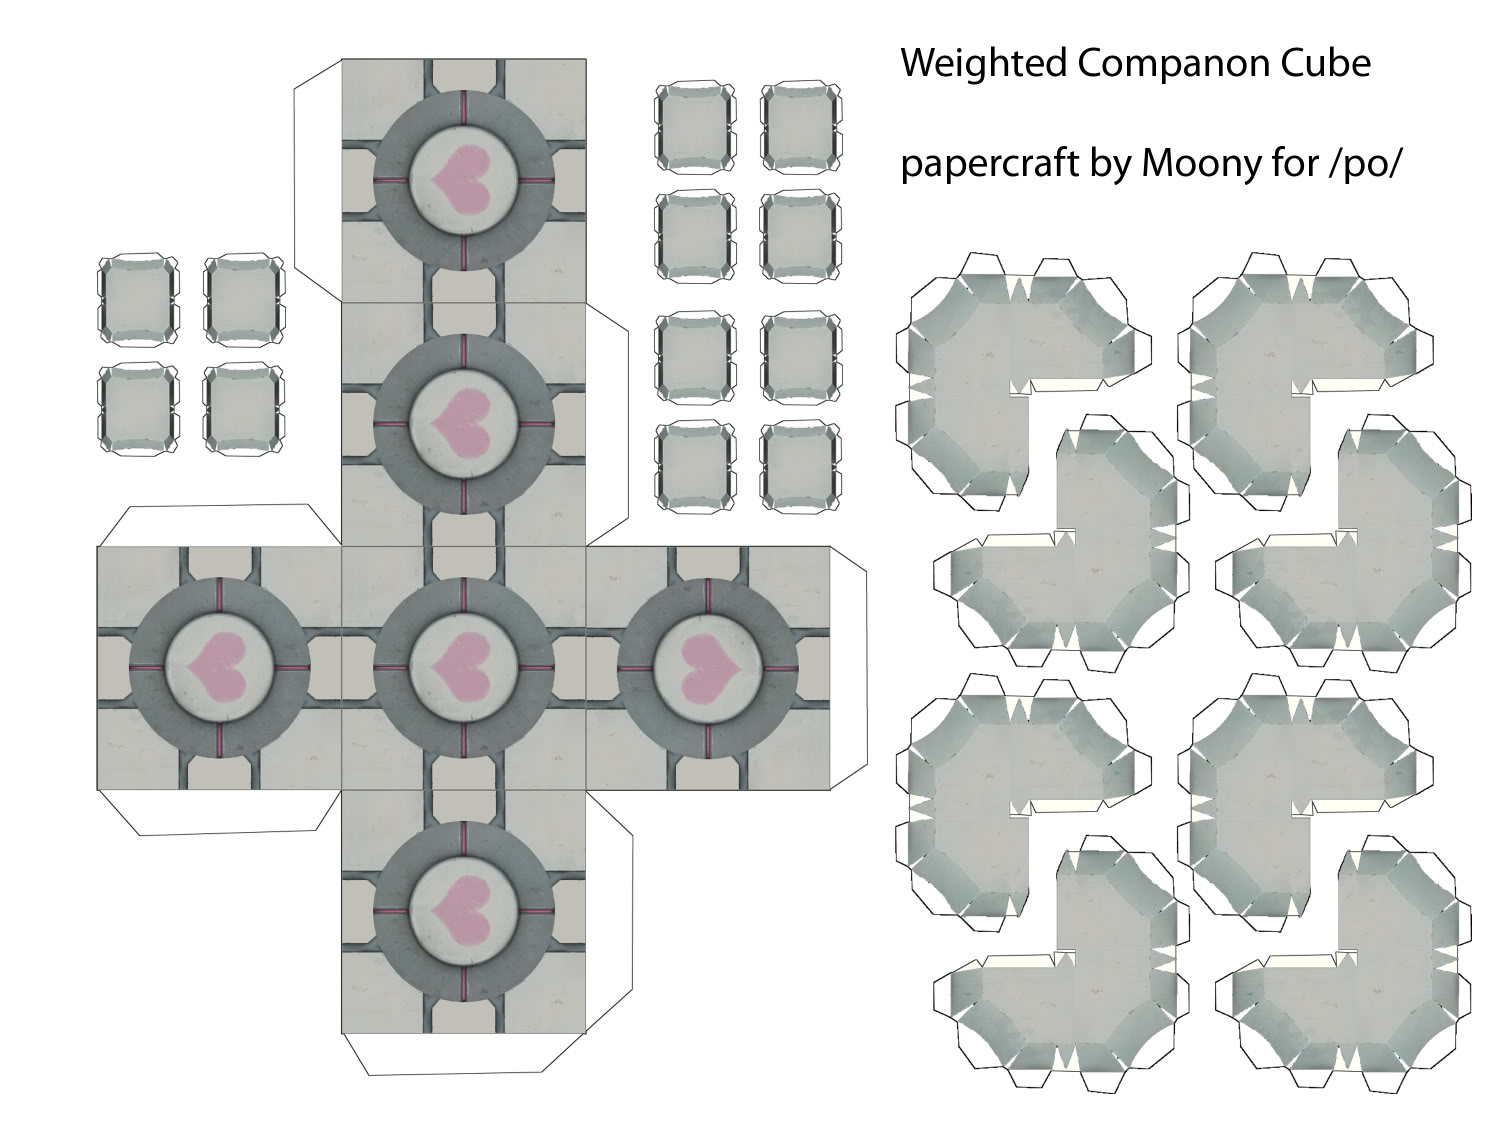 Companion Cube And Friends Weighted Companion Cube Paper